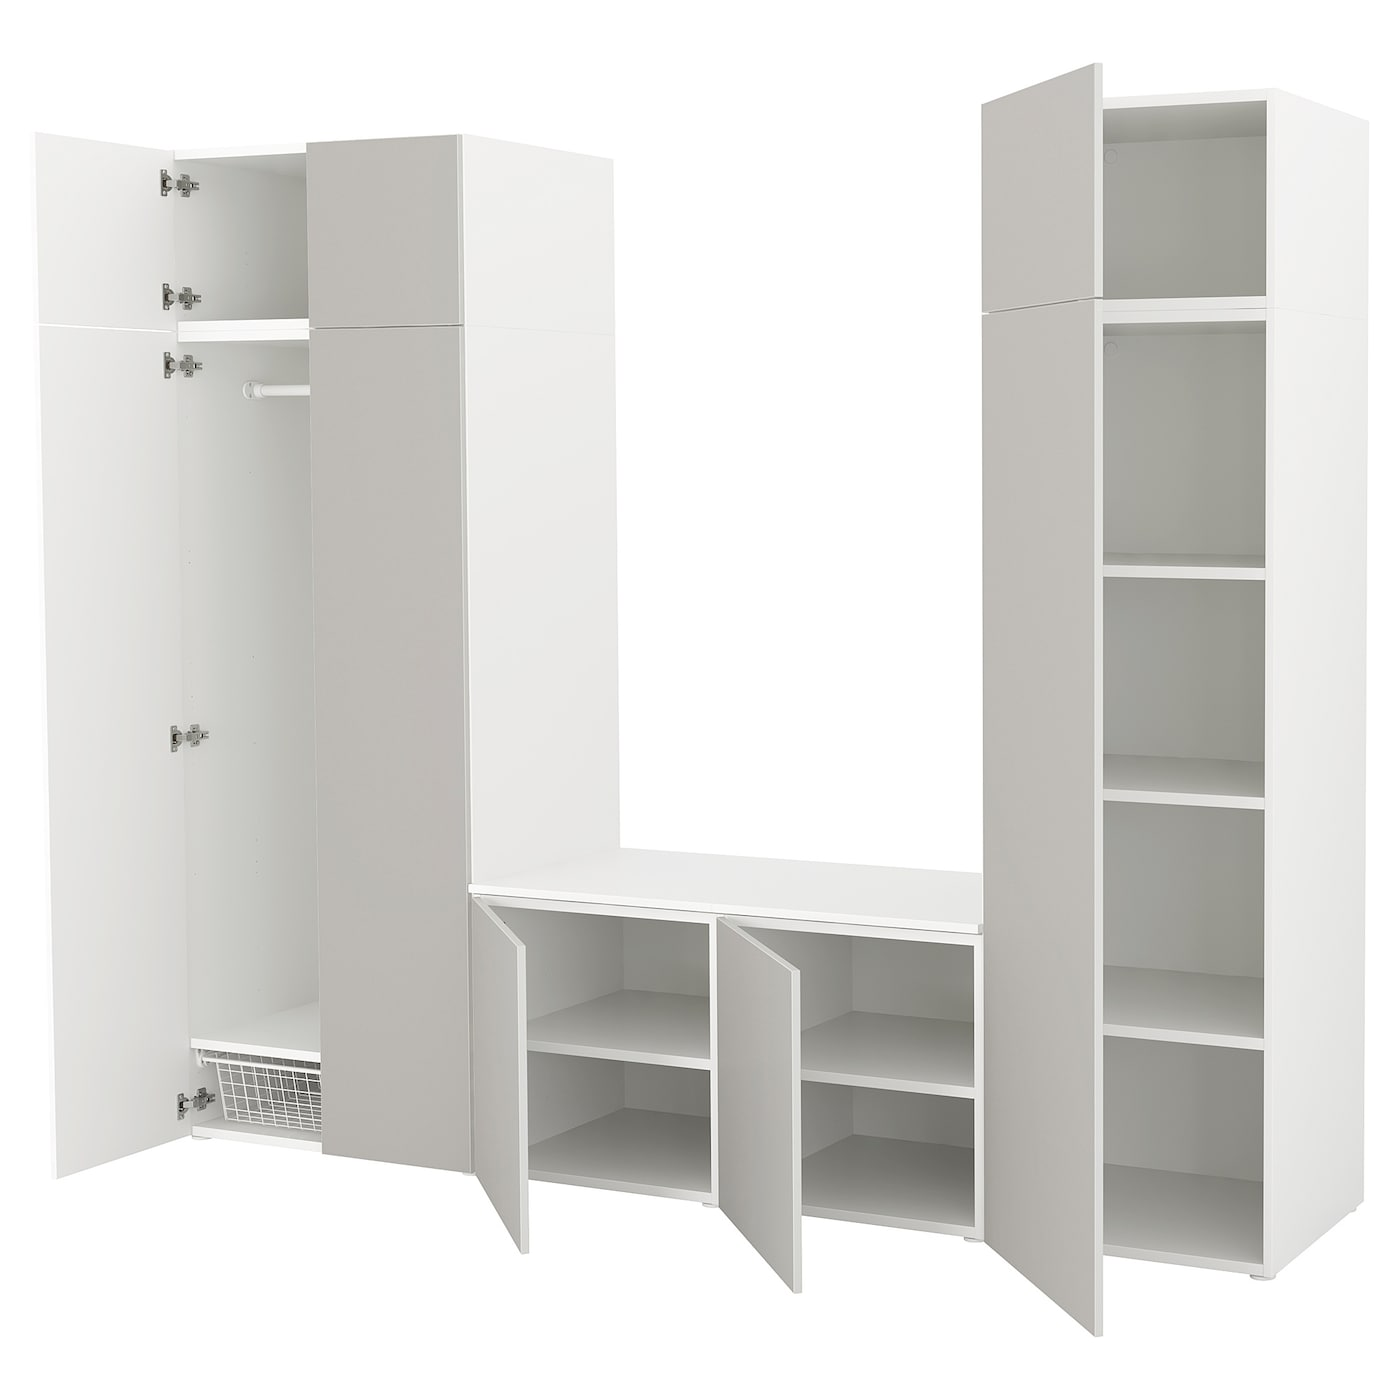 platsa armoire penderie blanc skatval gris clair 260 x 57 x 221 cm ikea. Black Bedroom Furniture Sets. Home Design Ideas